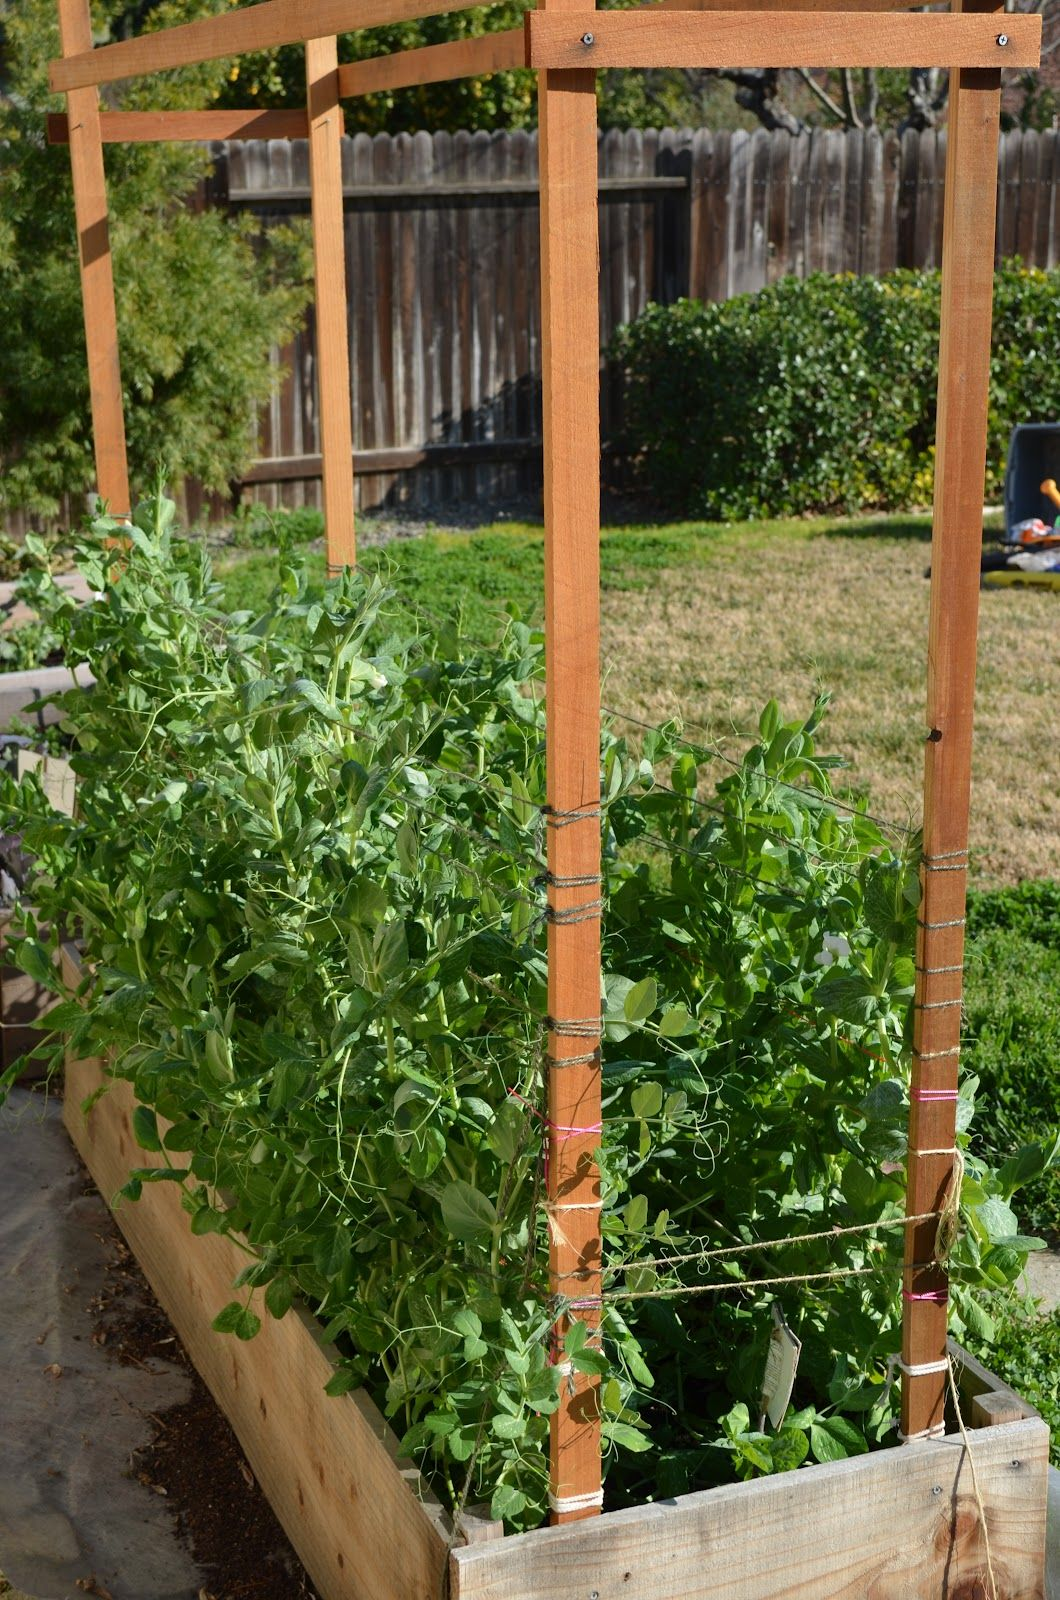 so this simple trellis held the weight of 32 snow pea plants and